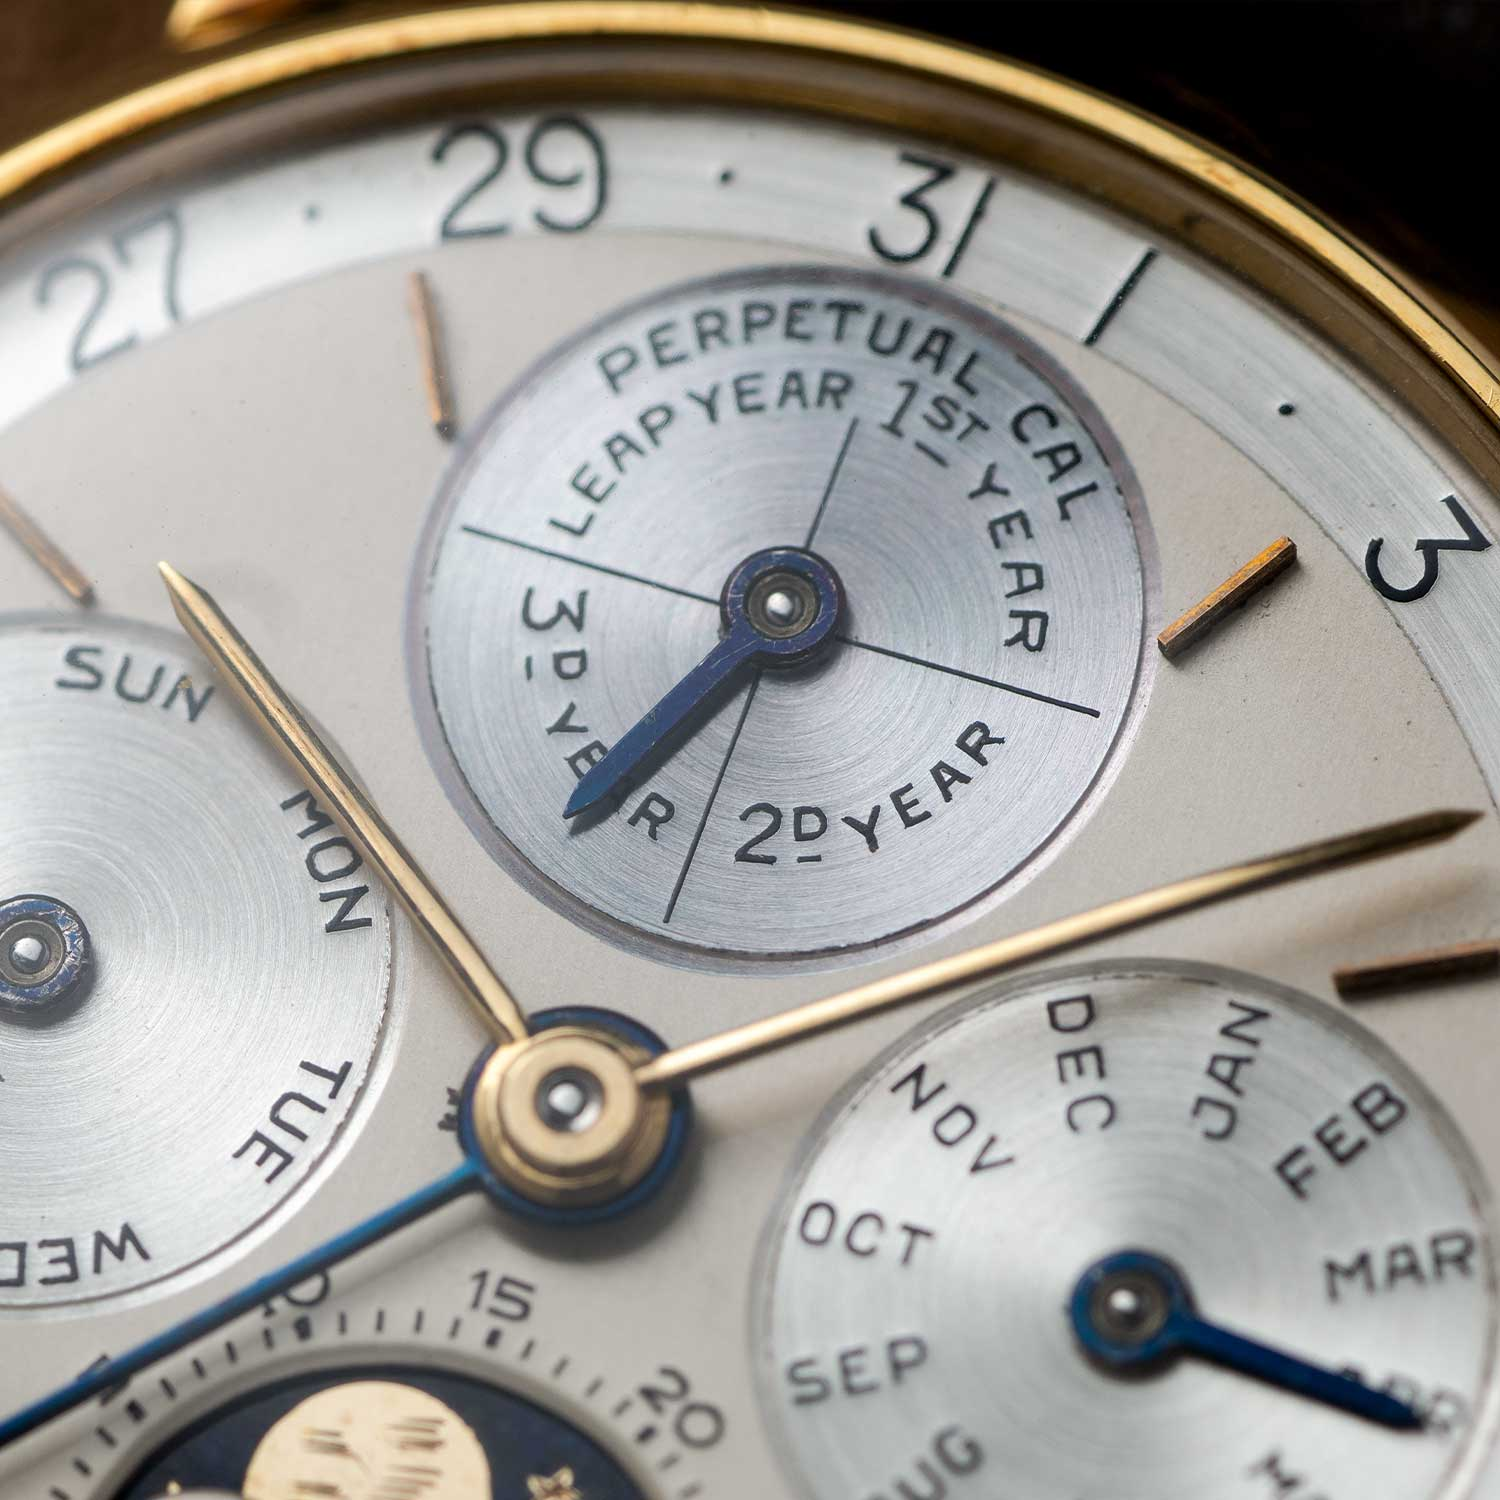 A close up on the dial of the Second-Series ref. 5516 with the leap-year indicator at 12 o'clock, sans the 48-month scale; the watch seen here is presently part of the Pygmalion Gallery's private collection (Image: Image and watch, property of Pygmalion Gallery)